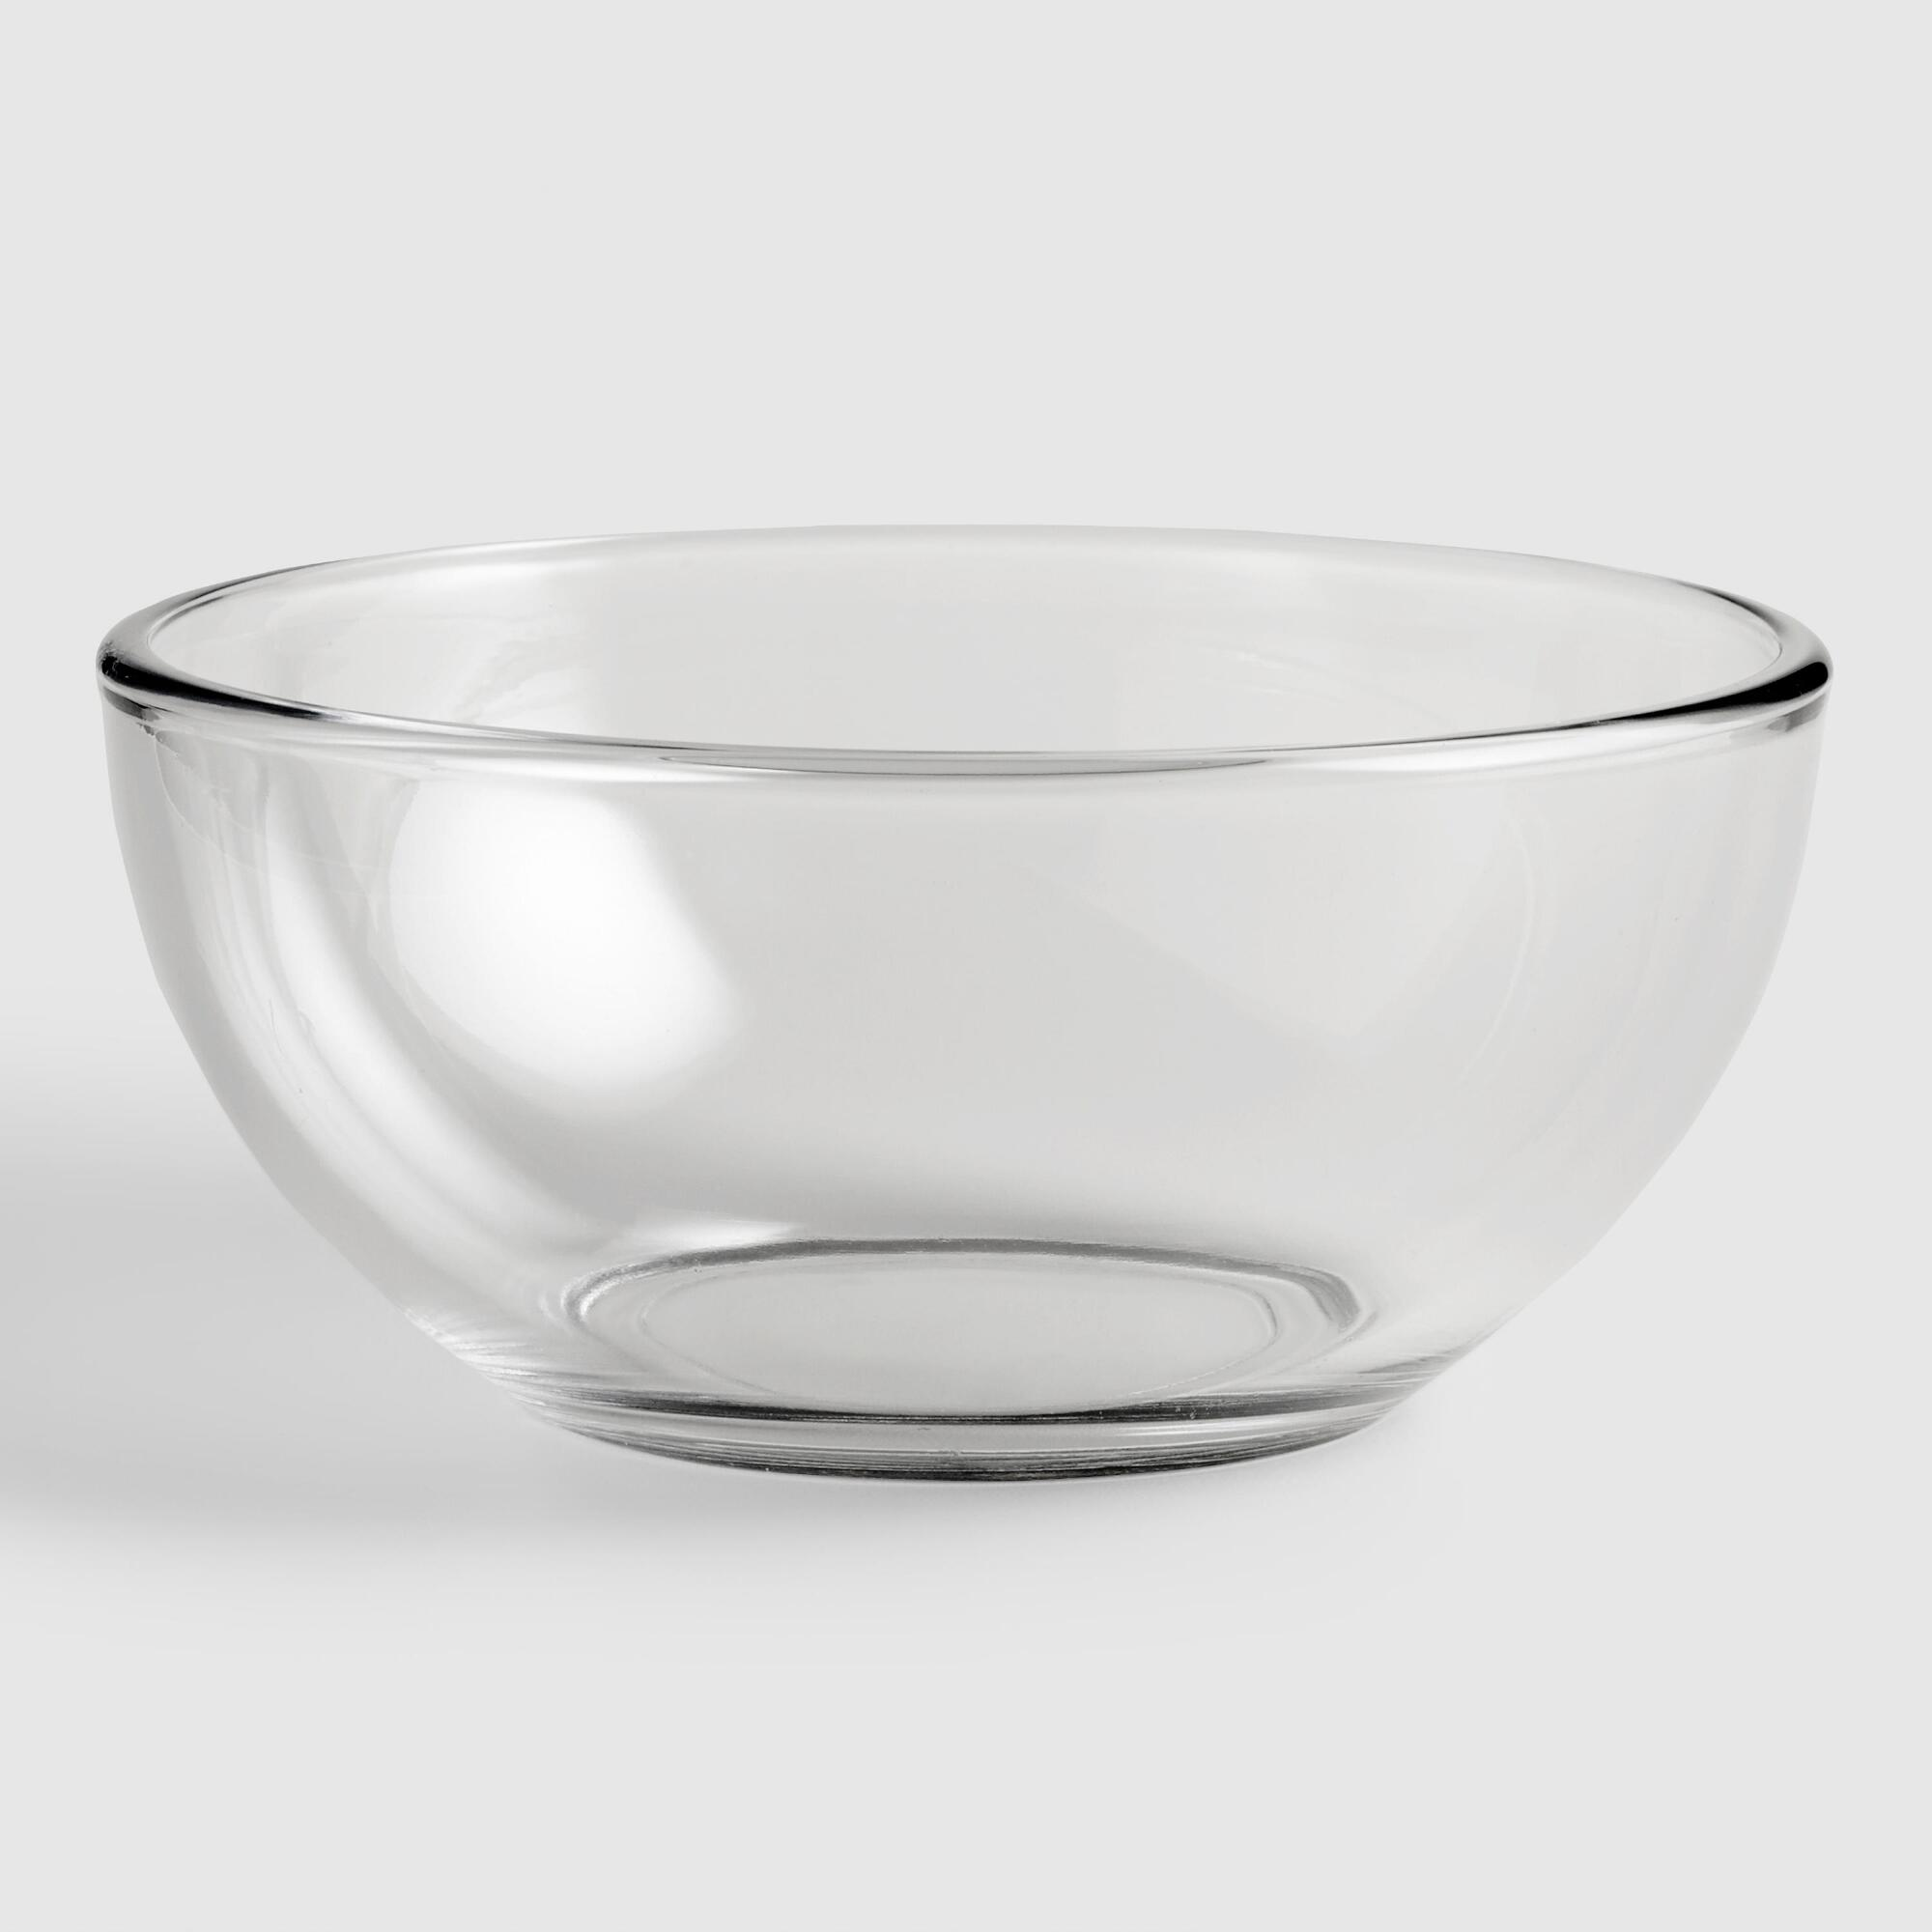 Glass Moderno Bowls, set of 4 by World Market